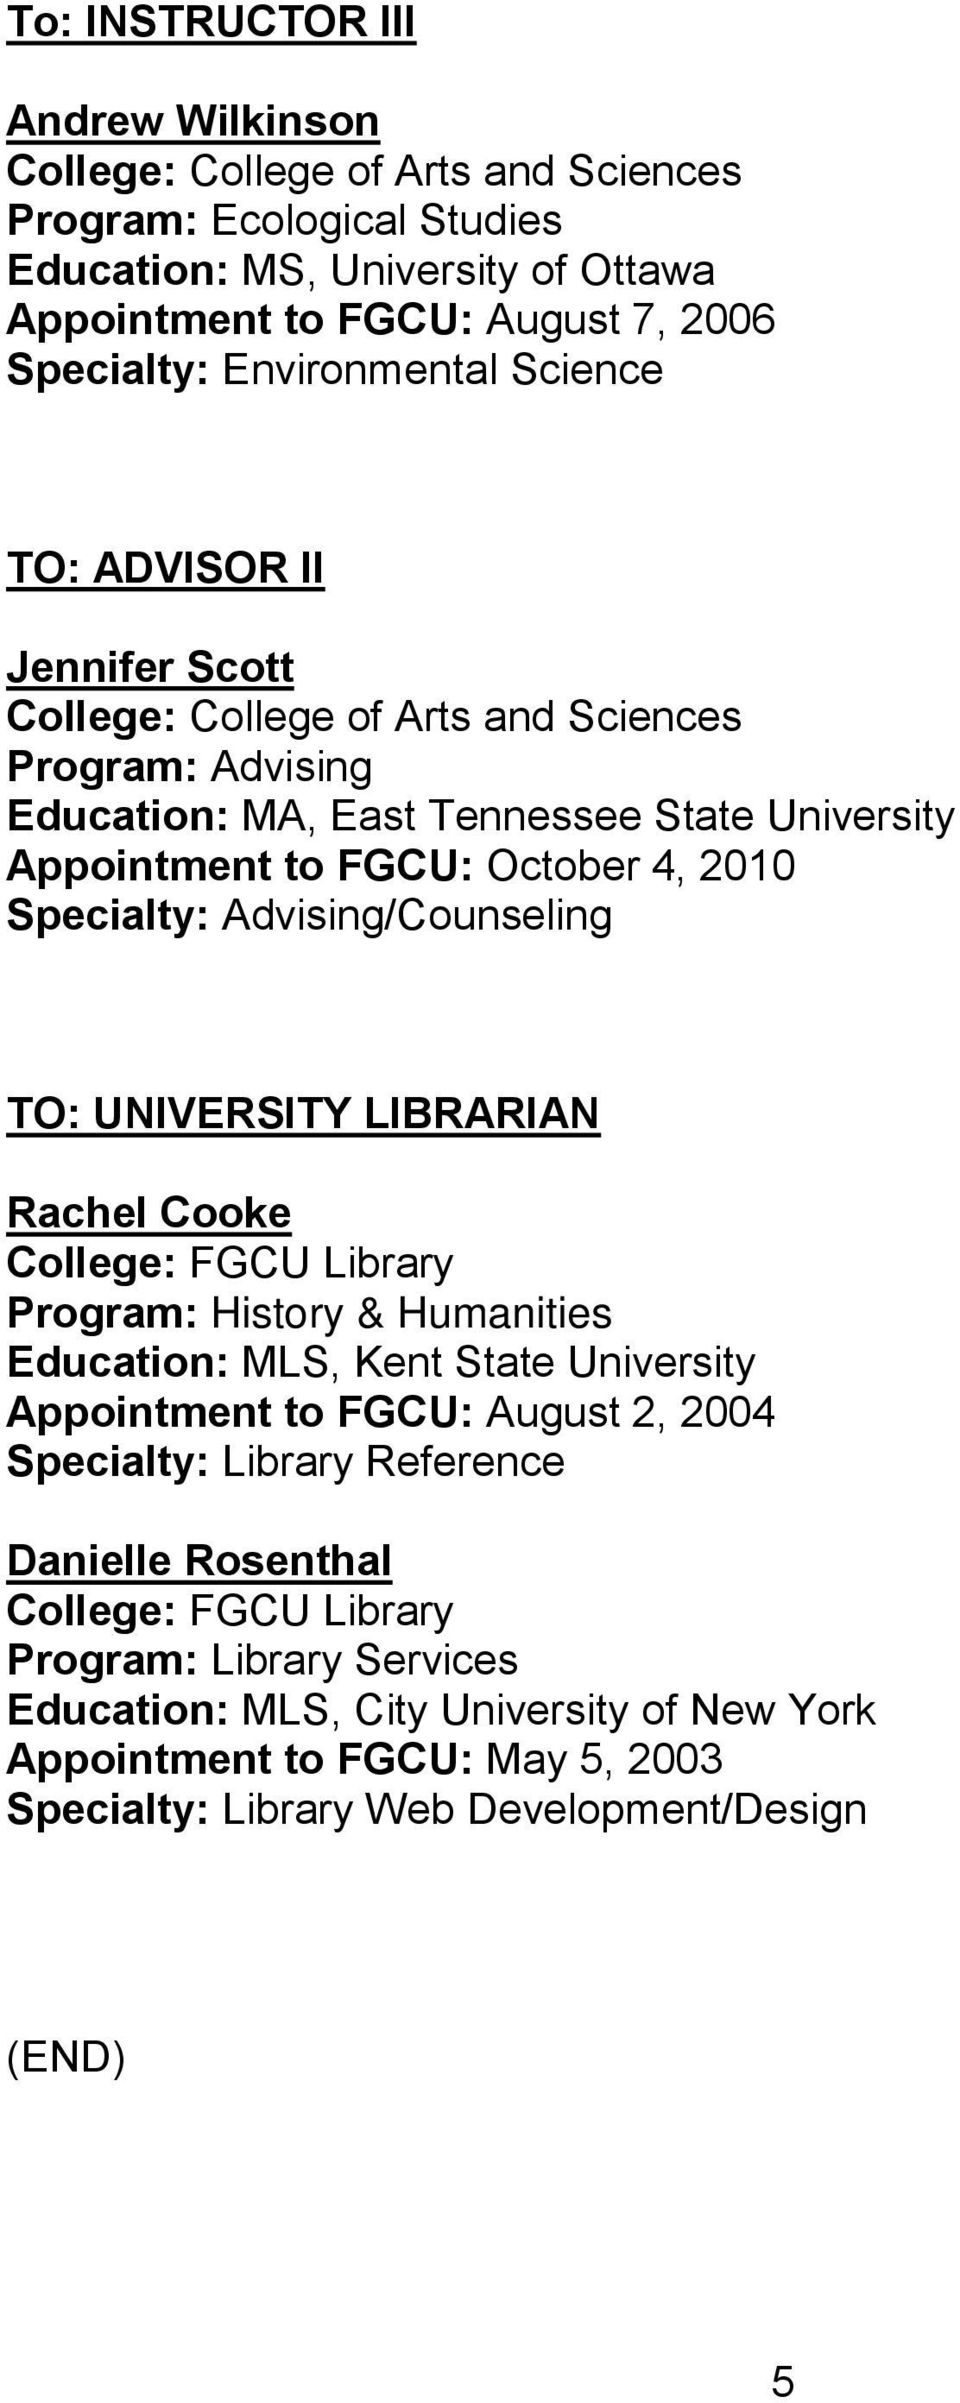 LIBRARIAN Rachel Cooke College: FGCU Library Program: History & Humanities Education: MLS, Kent State University Appointment to FGCU: August 2, 2004 Specialty: Library Reference